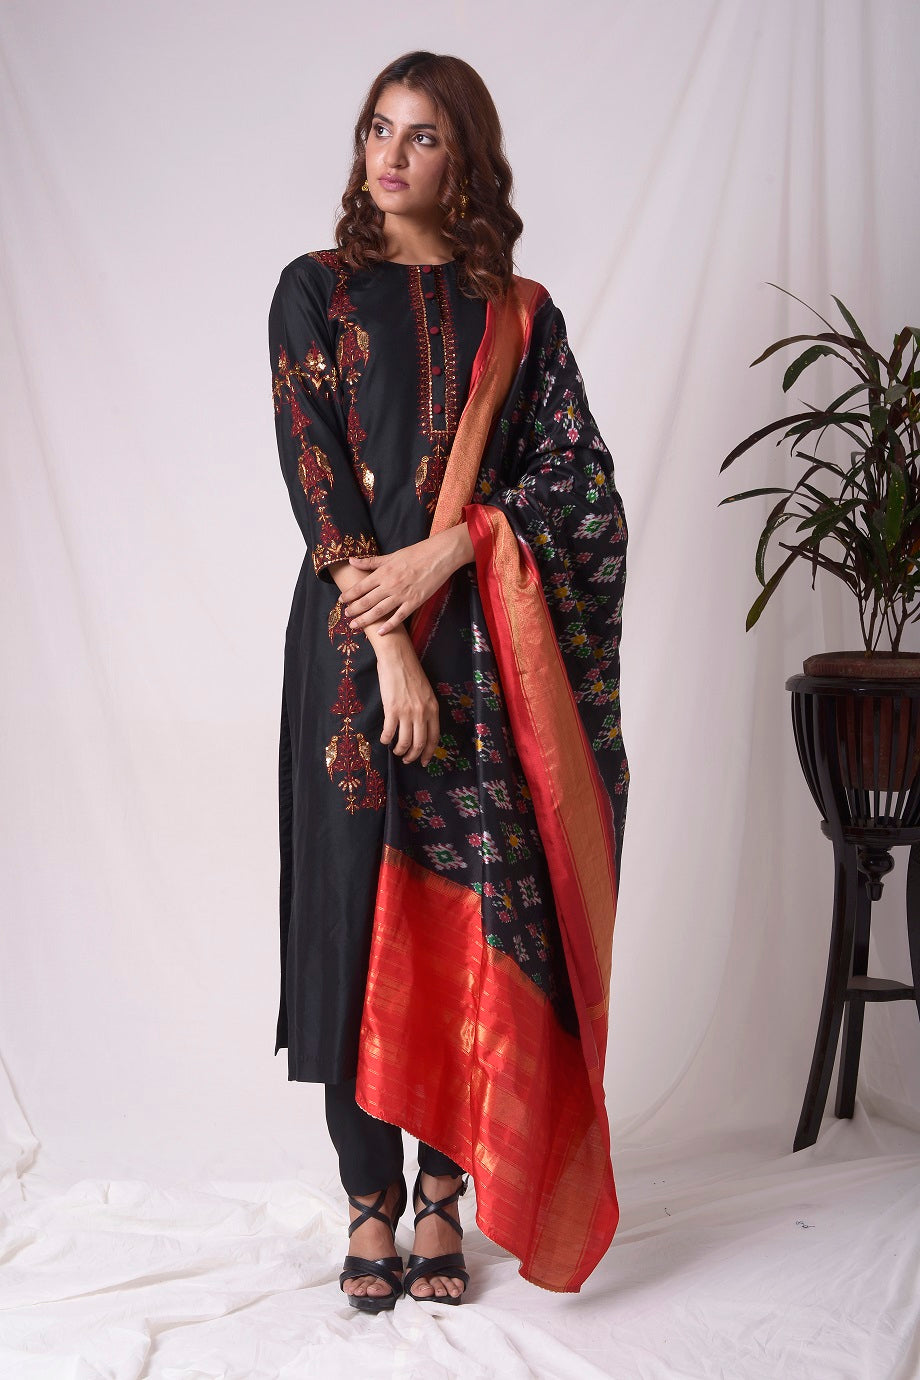 Buy black cotton silk suit online in USA. Suit has simple red  work. Be the talk of parties and weddings with exquisite designer gowns, Indian suits, Anarkali dresses, Indowestern dresses from Pure Elegance Indian clothing store in USA.Shop online now.-full view